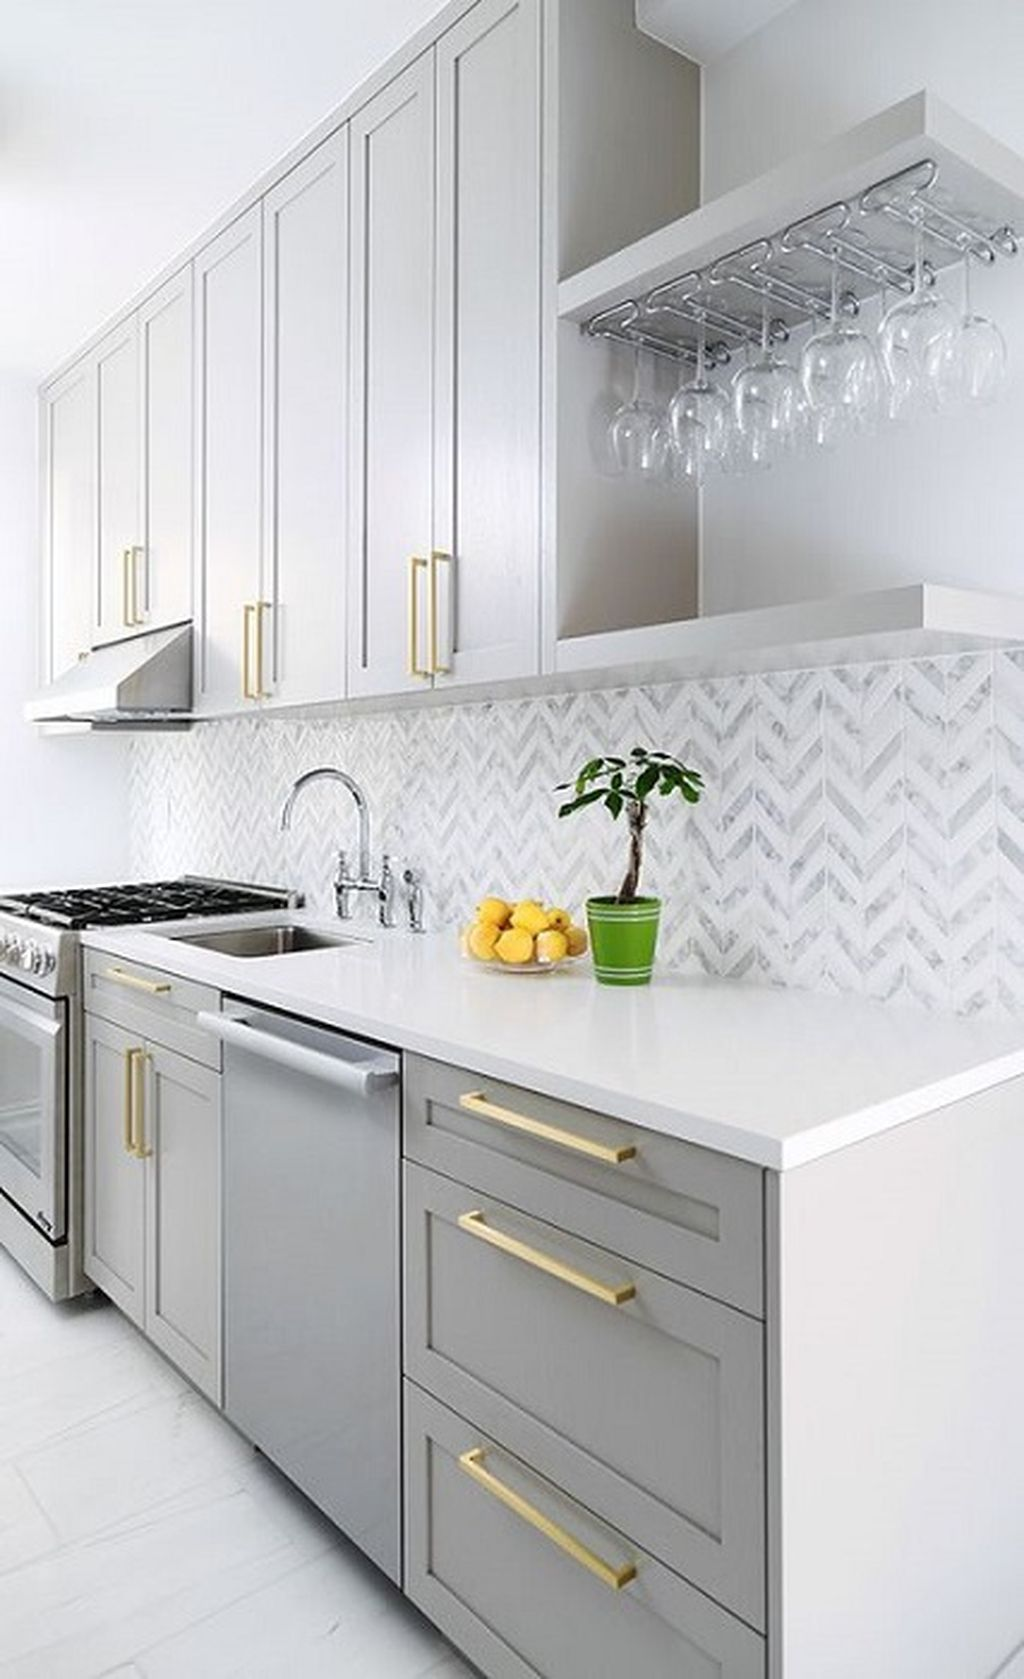 20+ Excellent Kitchen Remodel Before And After Ideas